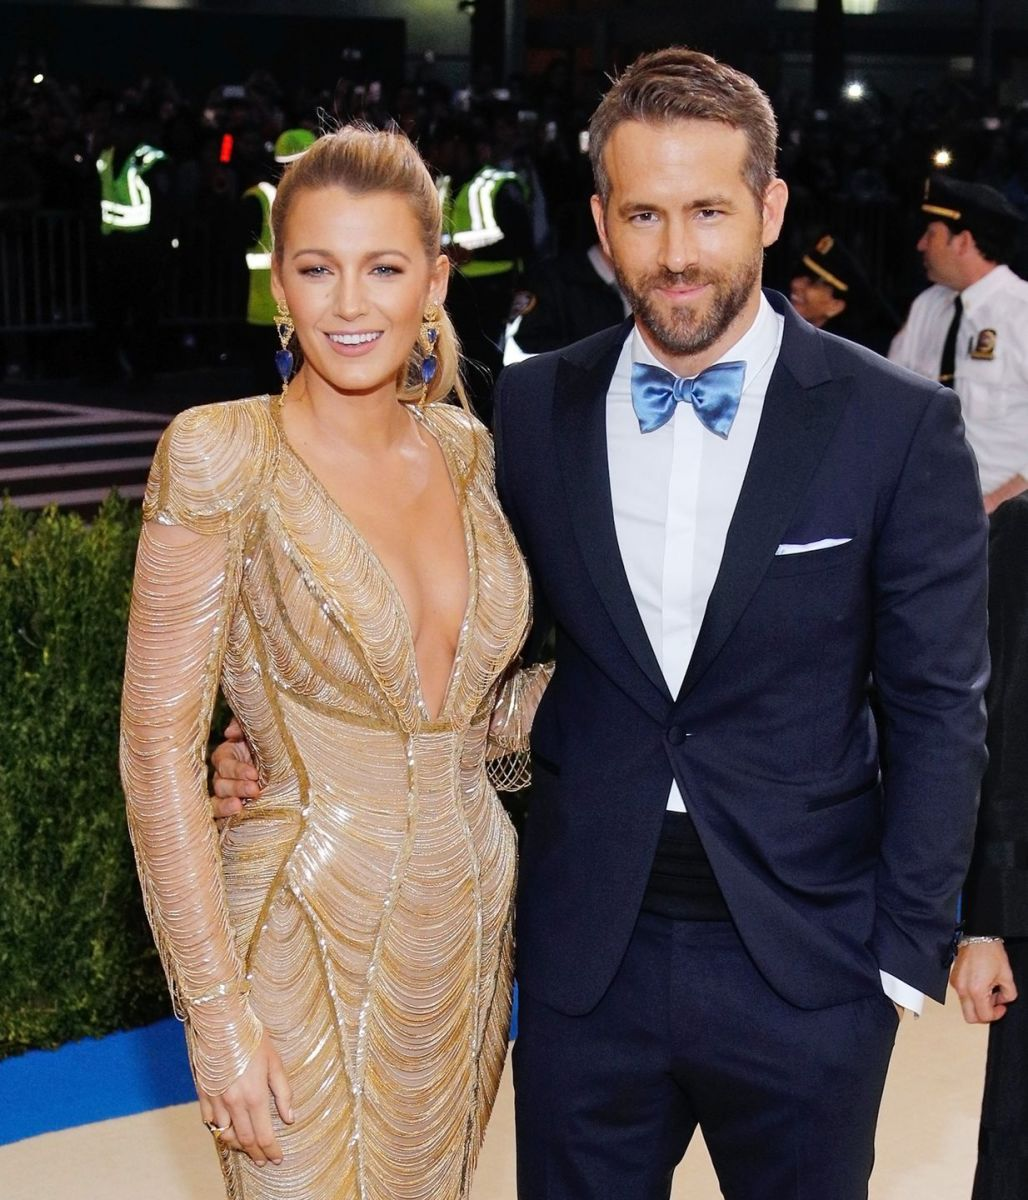 Ryan Reynolds and Blake Lively are a prominent Leo couple.